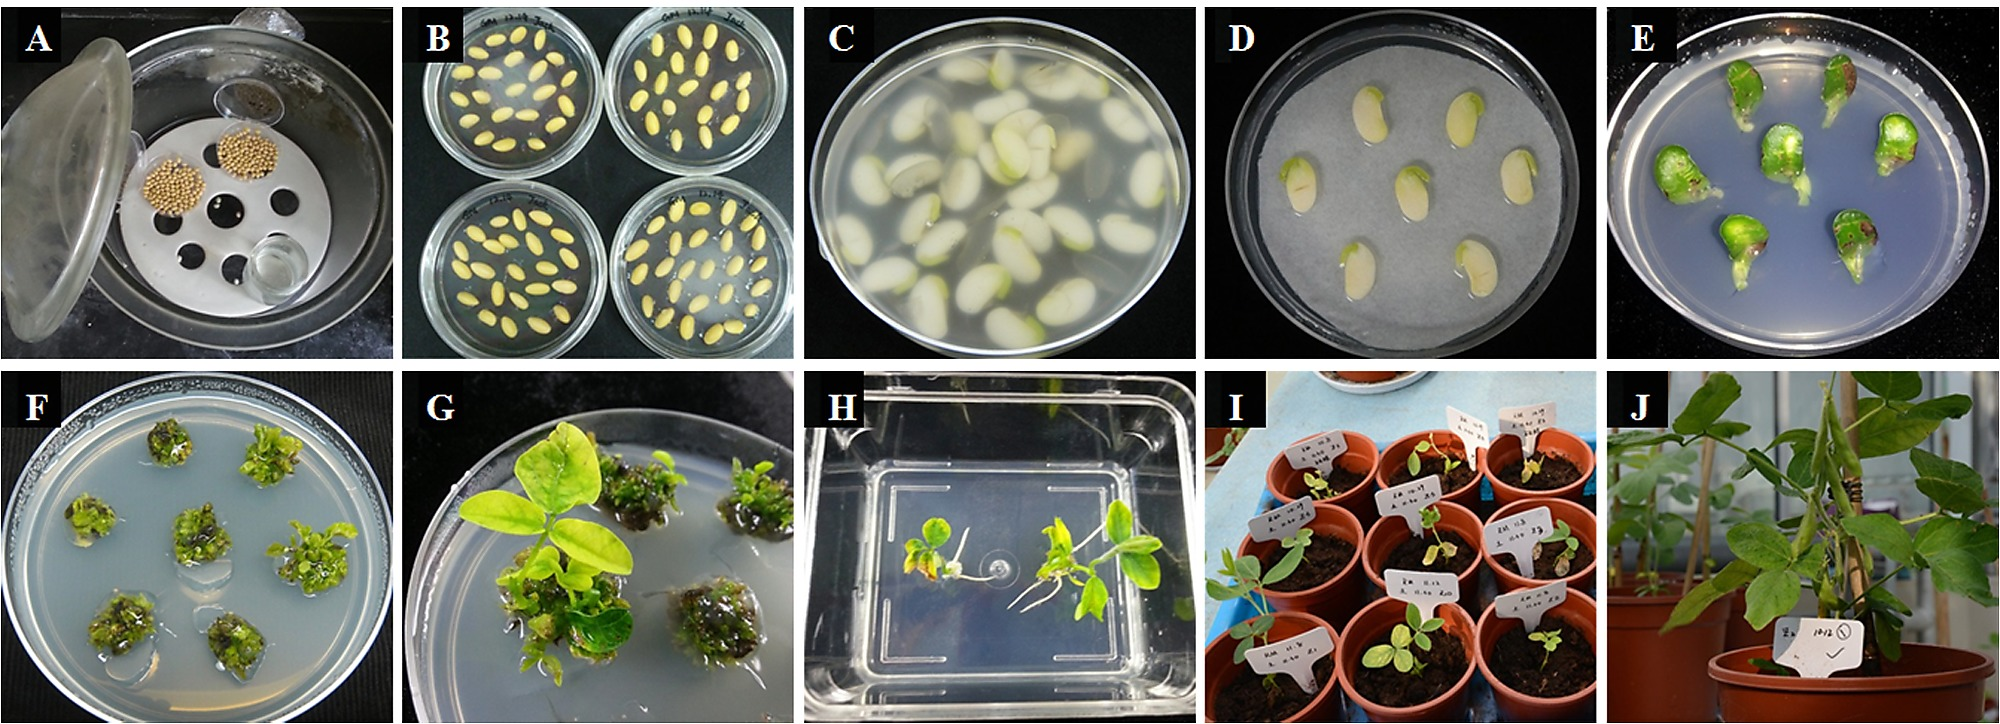 Overexpression Of A Gmcnx1 Gene Enhanced Activity Nitrate Back Gt Images For Bean Germination Diagram Agrobacterium Tumefaciens Mediated Transformation Using Cotyledonary Node As Explants In Soybean